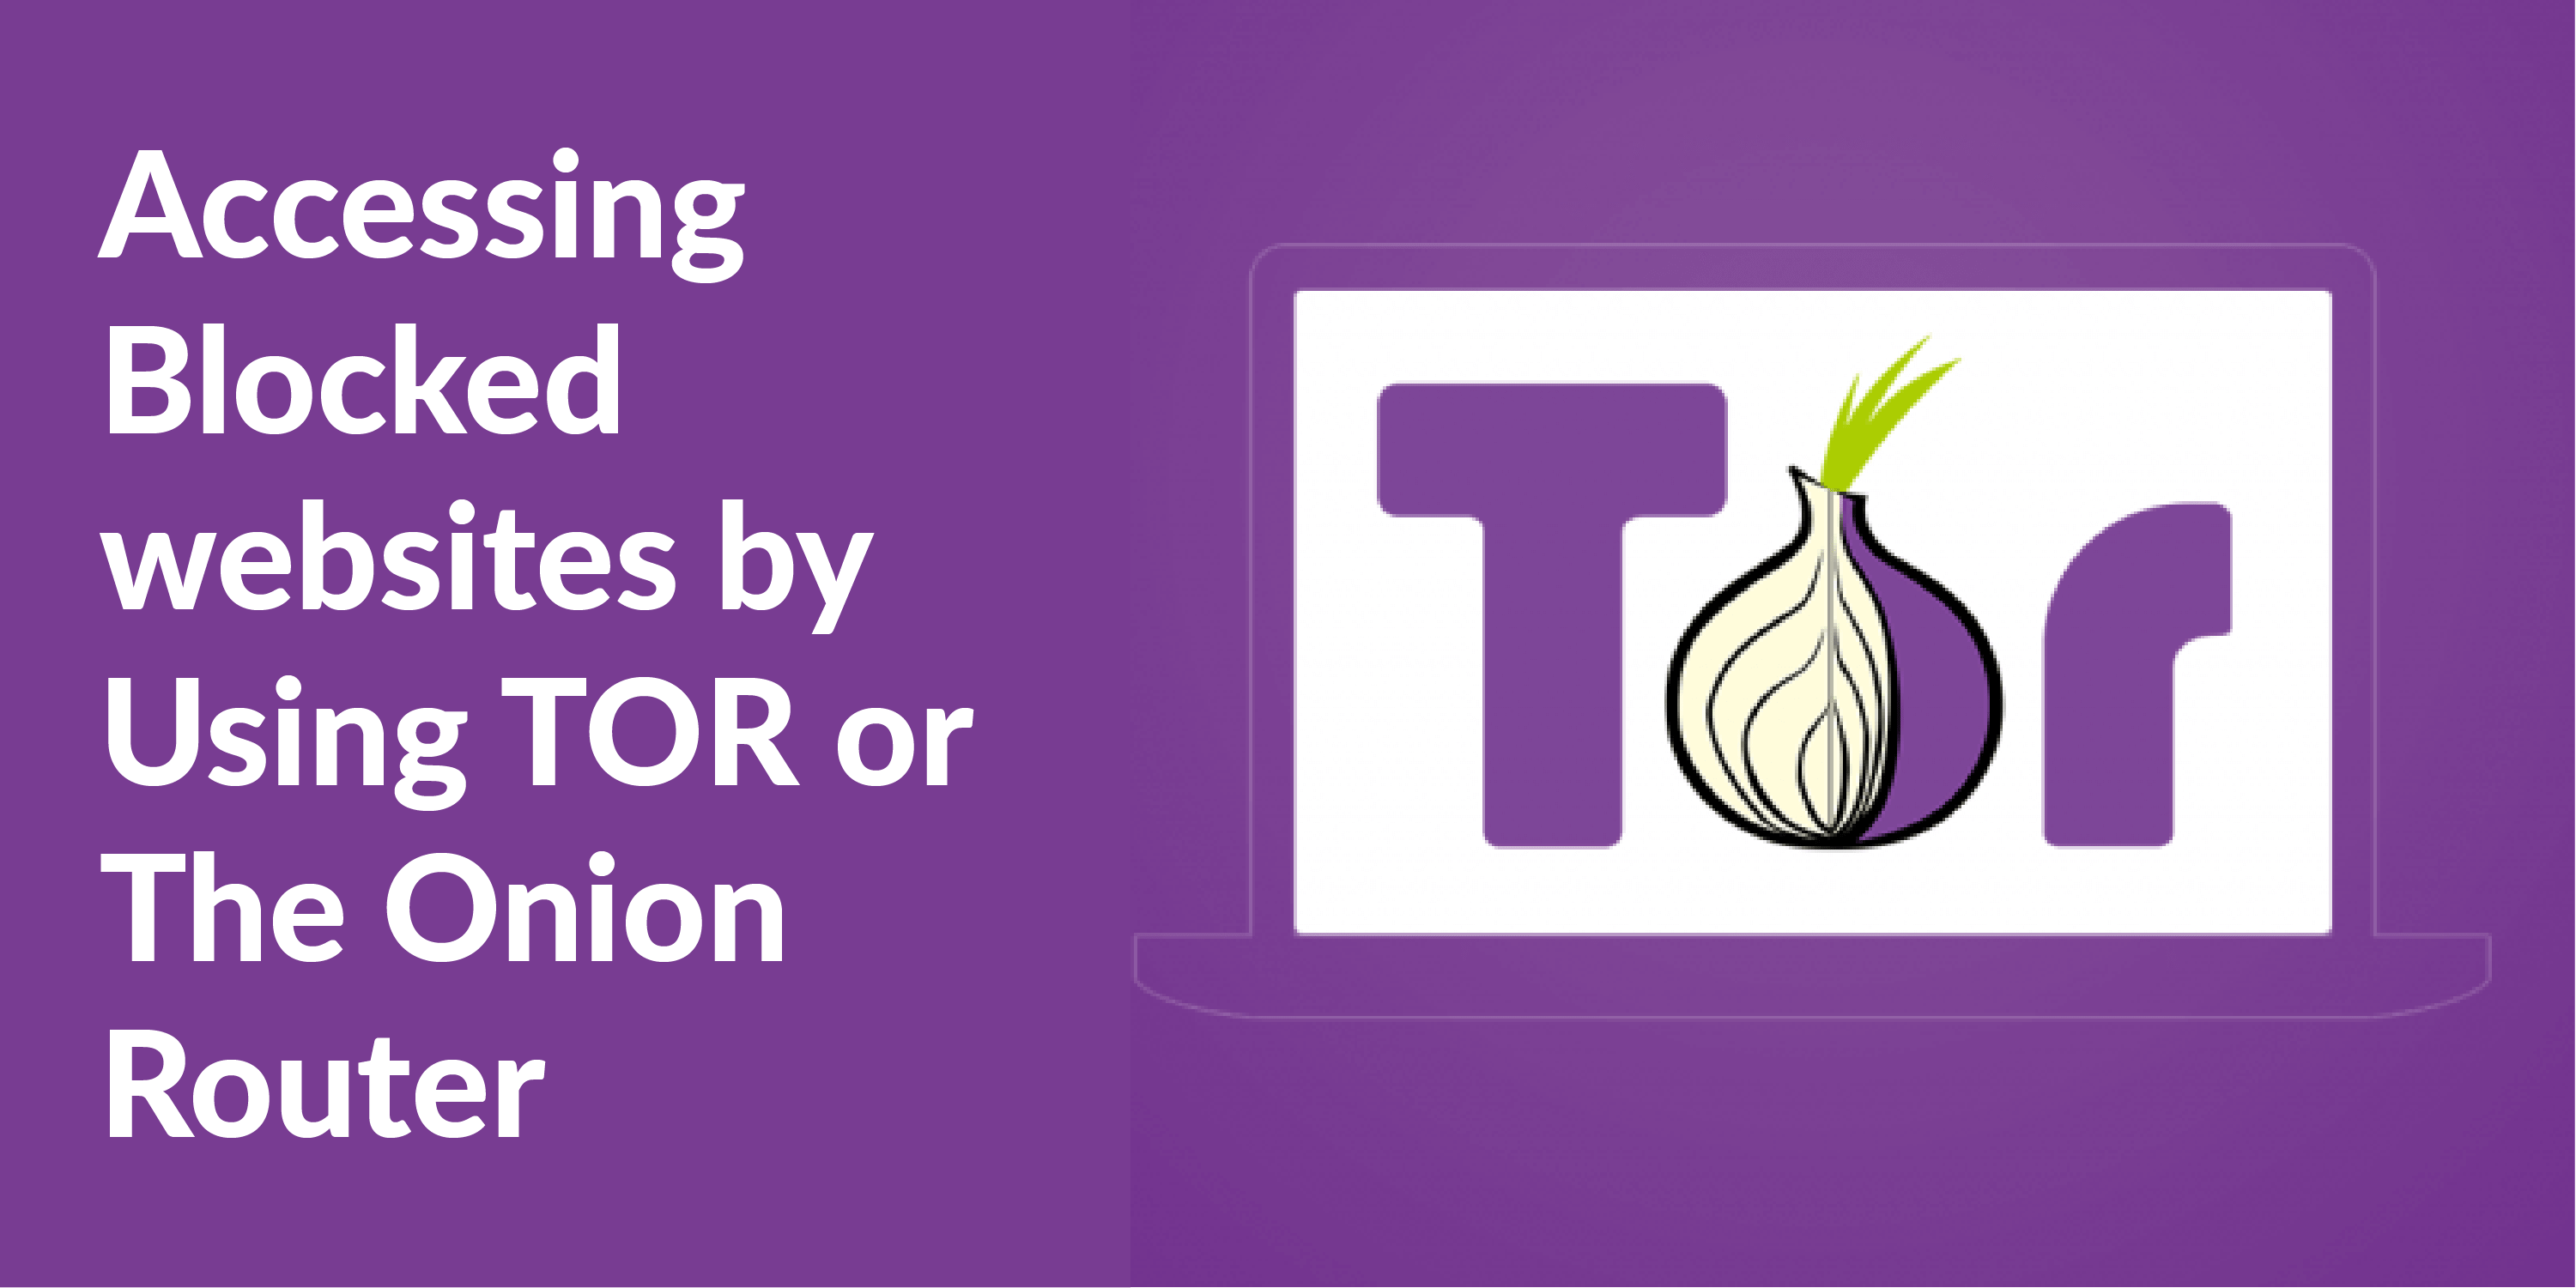 Access the Blocked Websites Using TOR